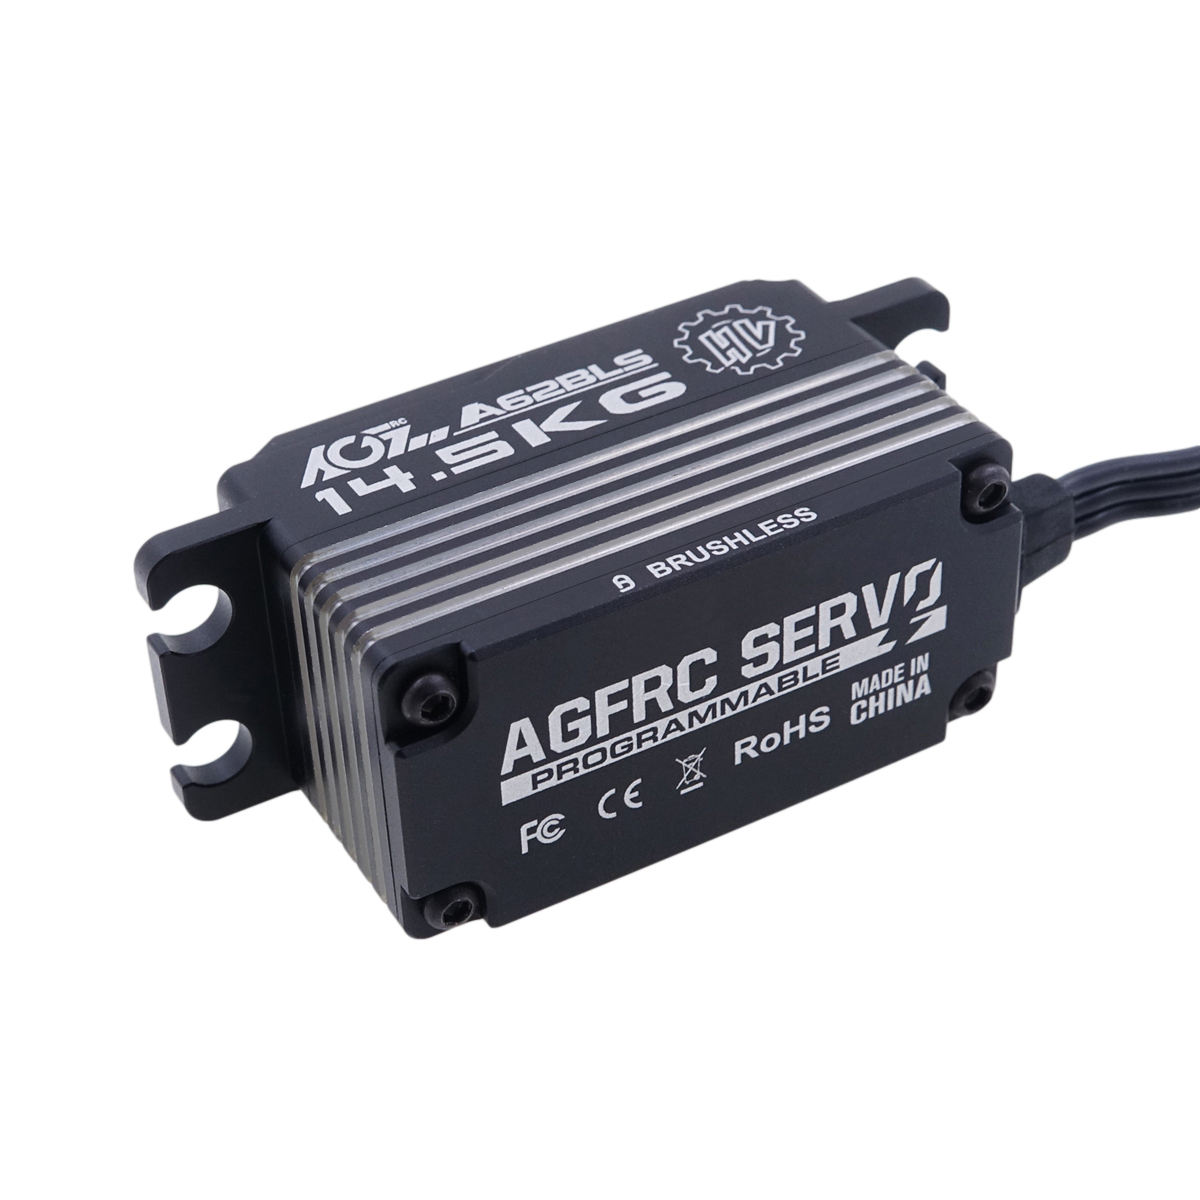 High quality AGFRC A62BLS Full CNC Servo-metal Brushless rc servo